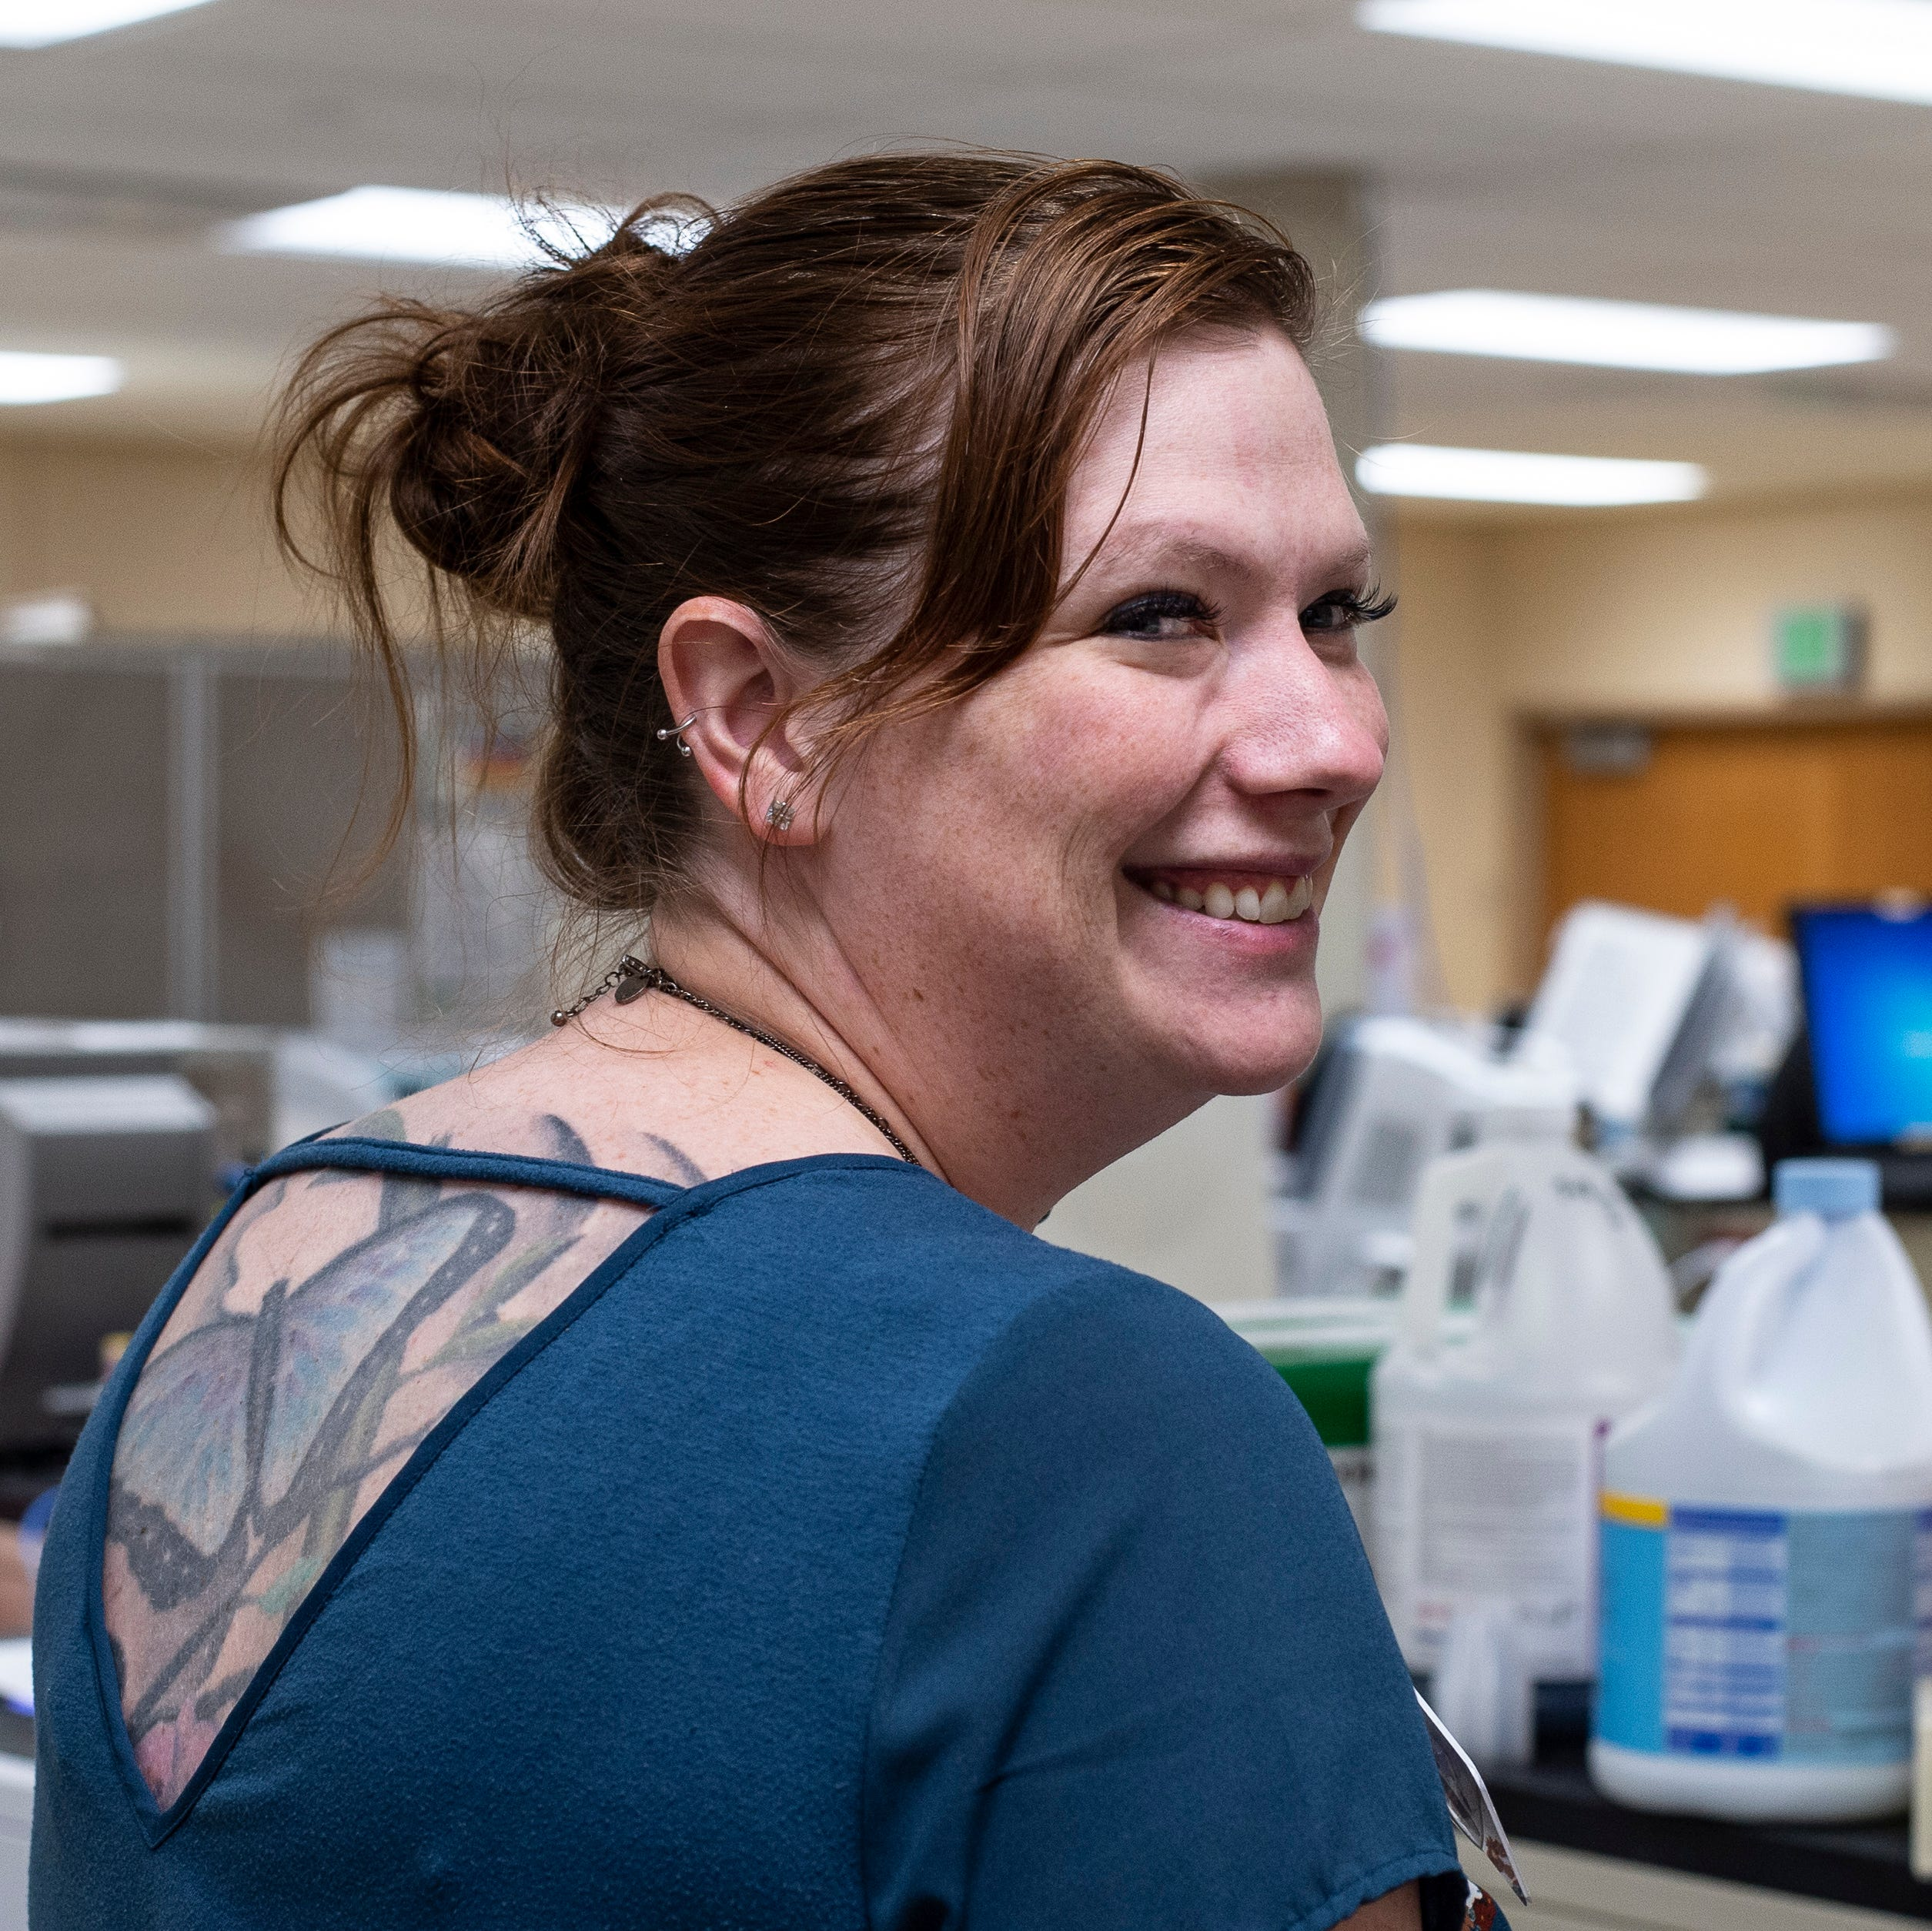 Reid Health lab manager Diana Eastman poses for a photo in the hospital's laboratory on Friday, Sept. 21, 2018. The tattoo on Eastman's back is now permitted to be visible following a change to the hospital's policy on the matter earlier in the year.